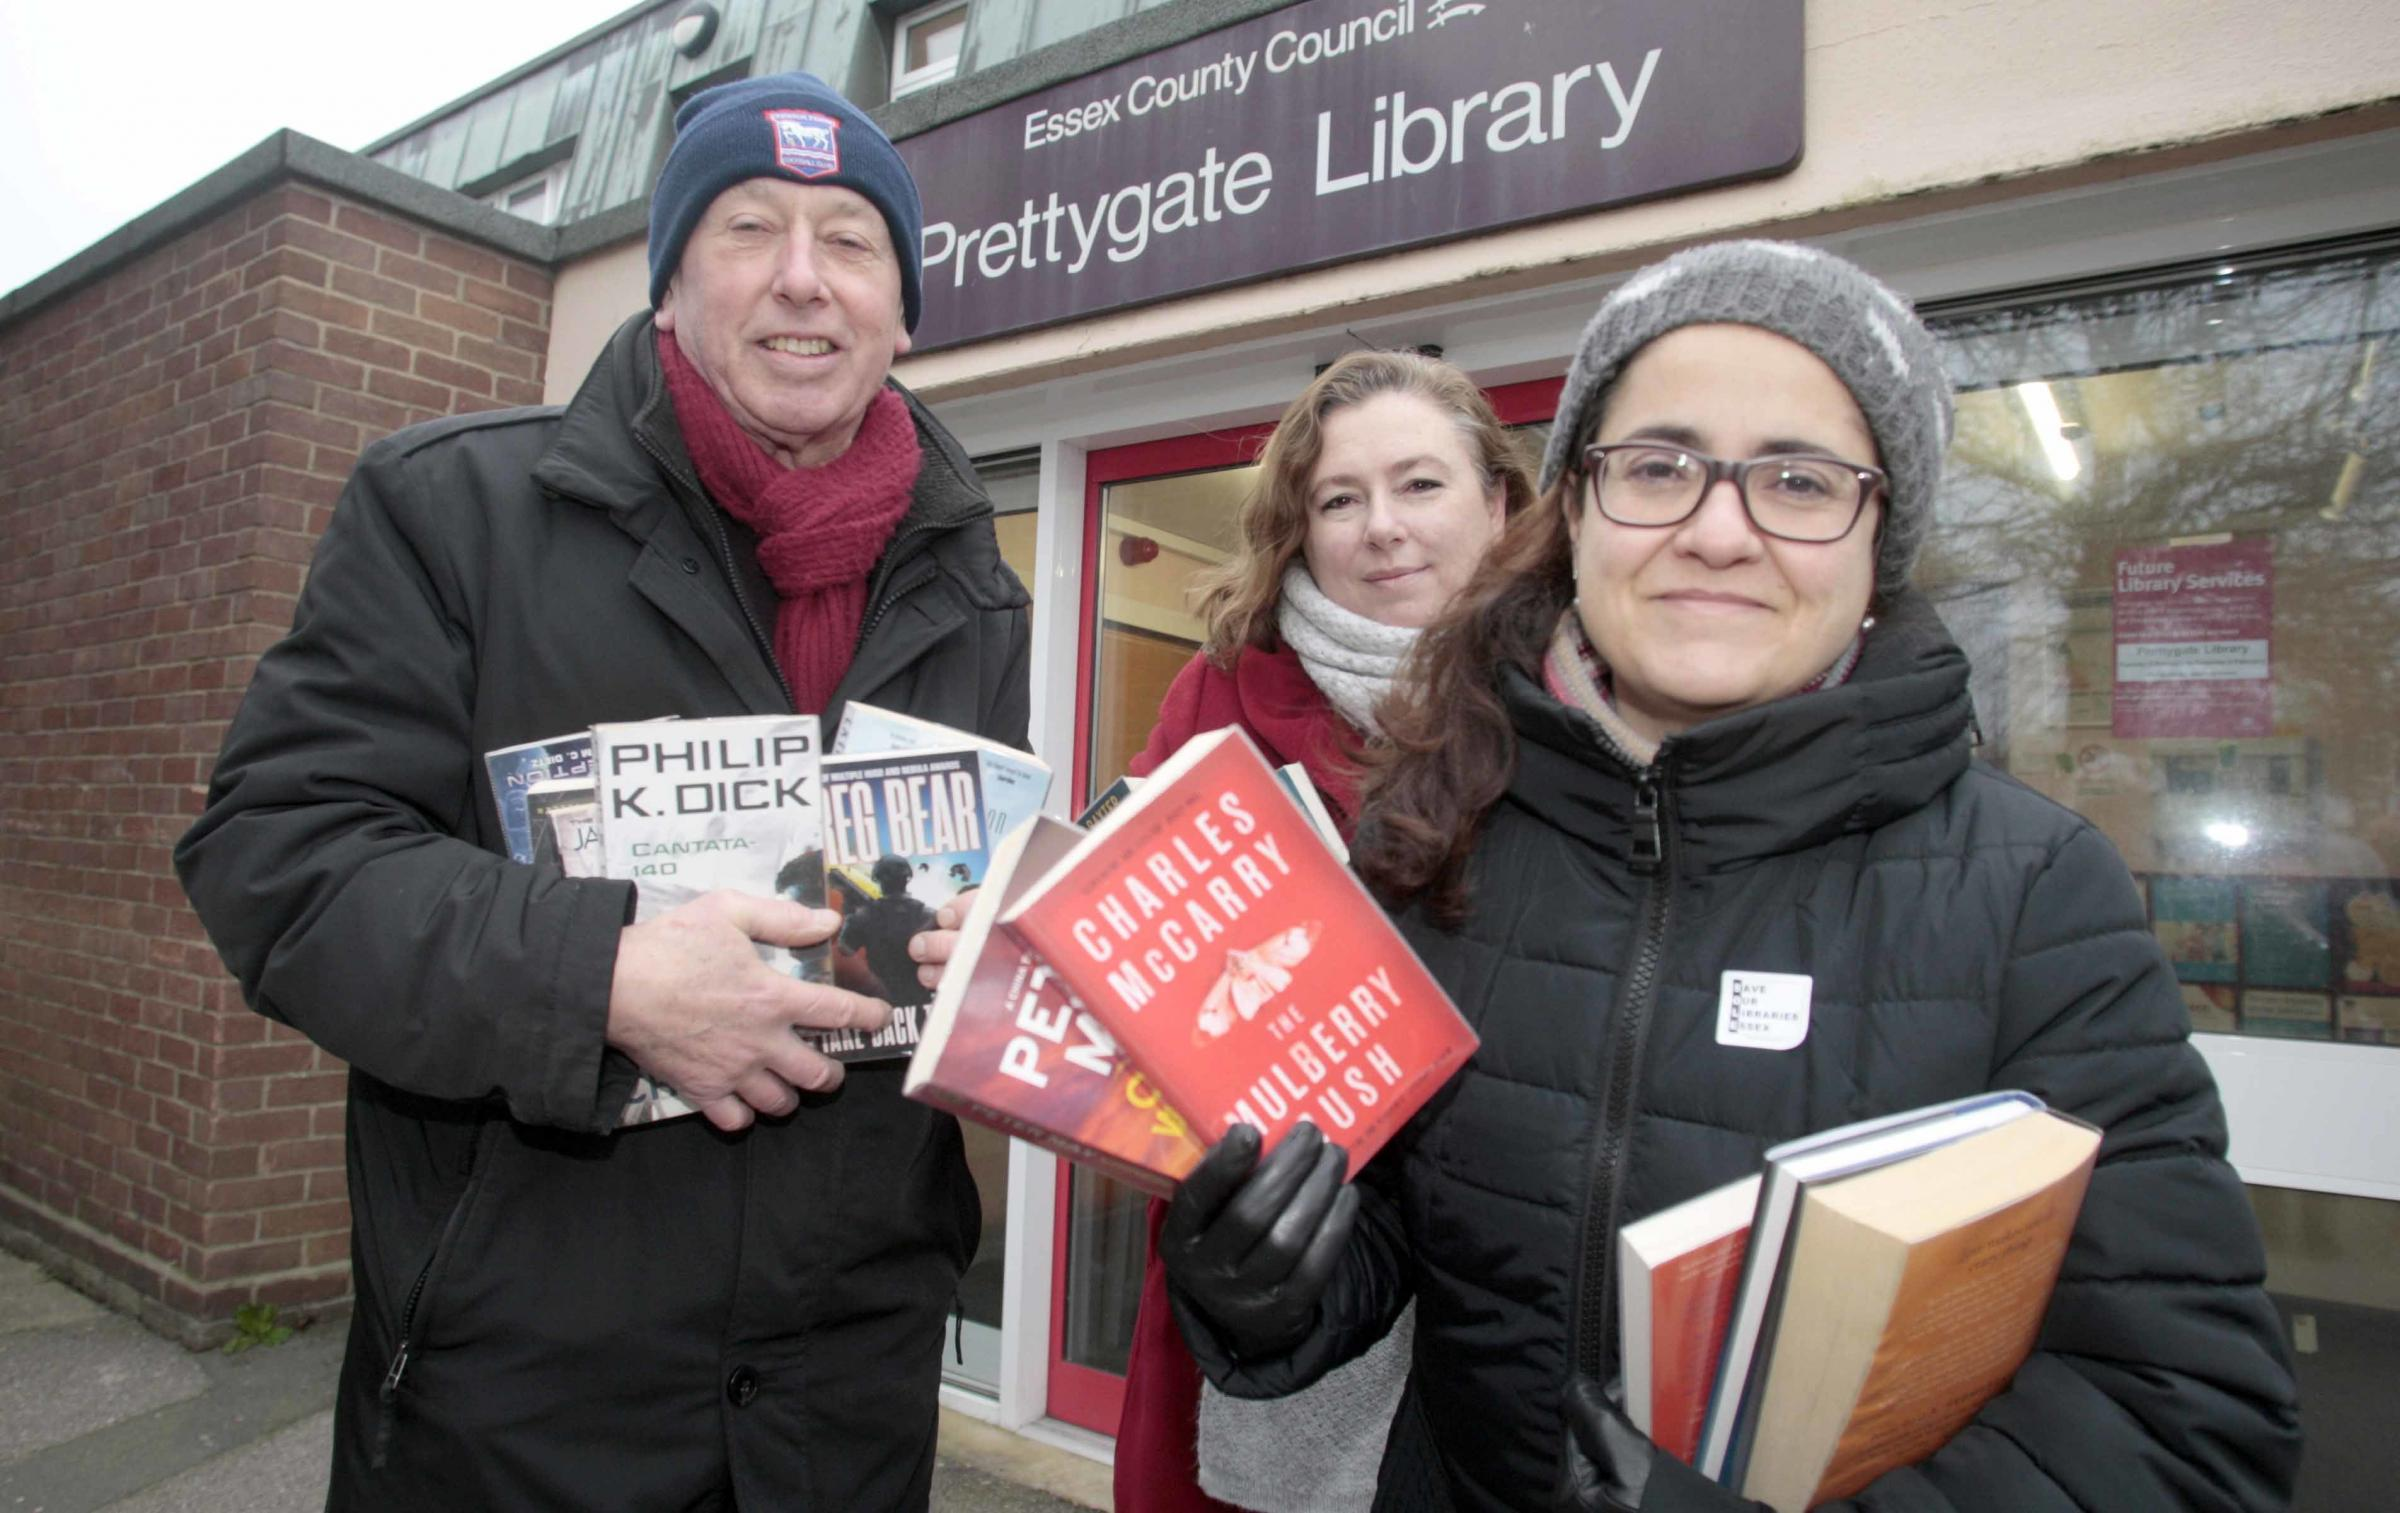 Second library raid where protesters are checking out as many books as possible in protest to Essex County Council proposing to close a number of libraries on Saturday at Prettygate Library.Local residence, Sonia Bartley, Dave Ling and Katy Vargas..